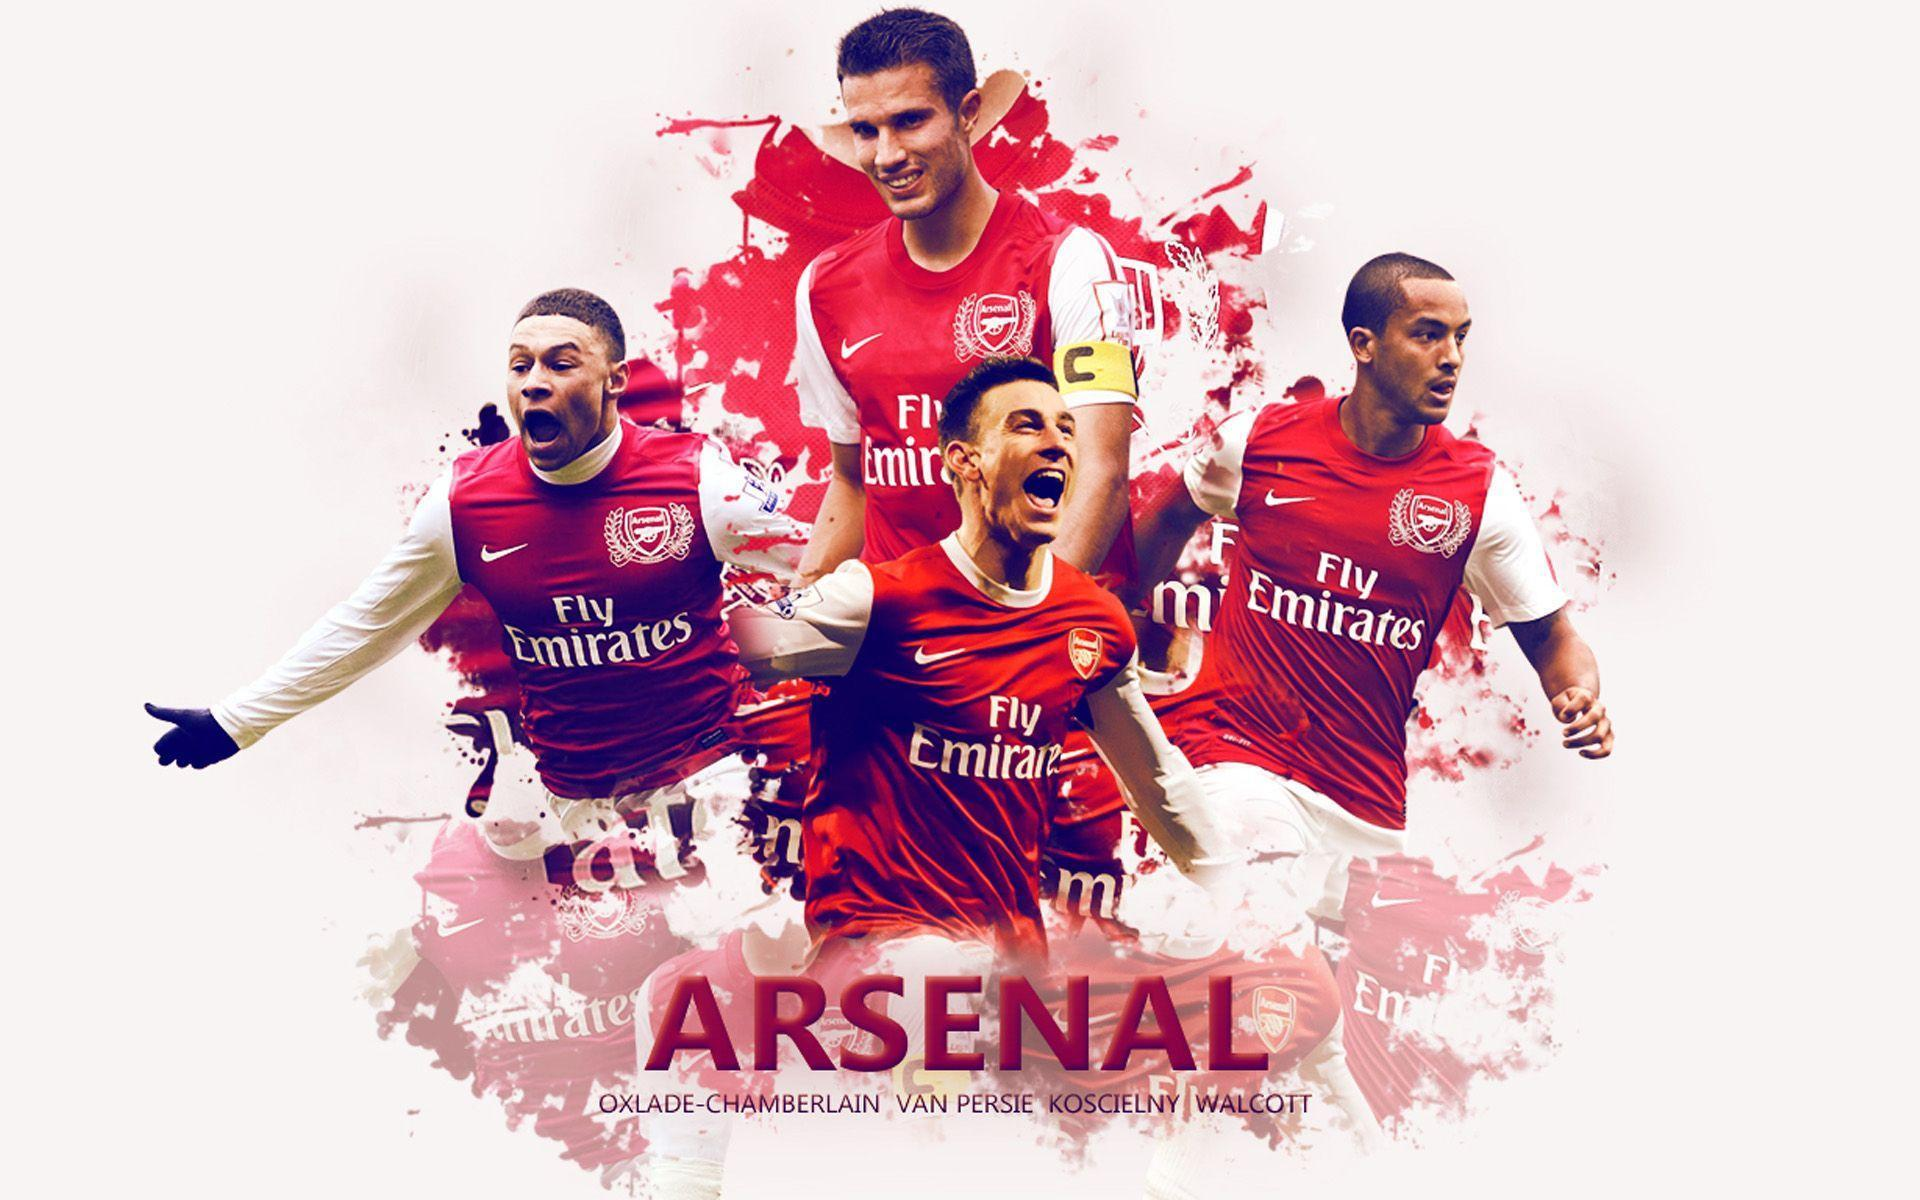 Arsenal Players Wallpapers Wallpaper Cave